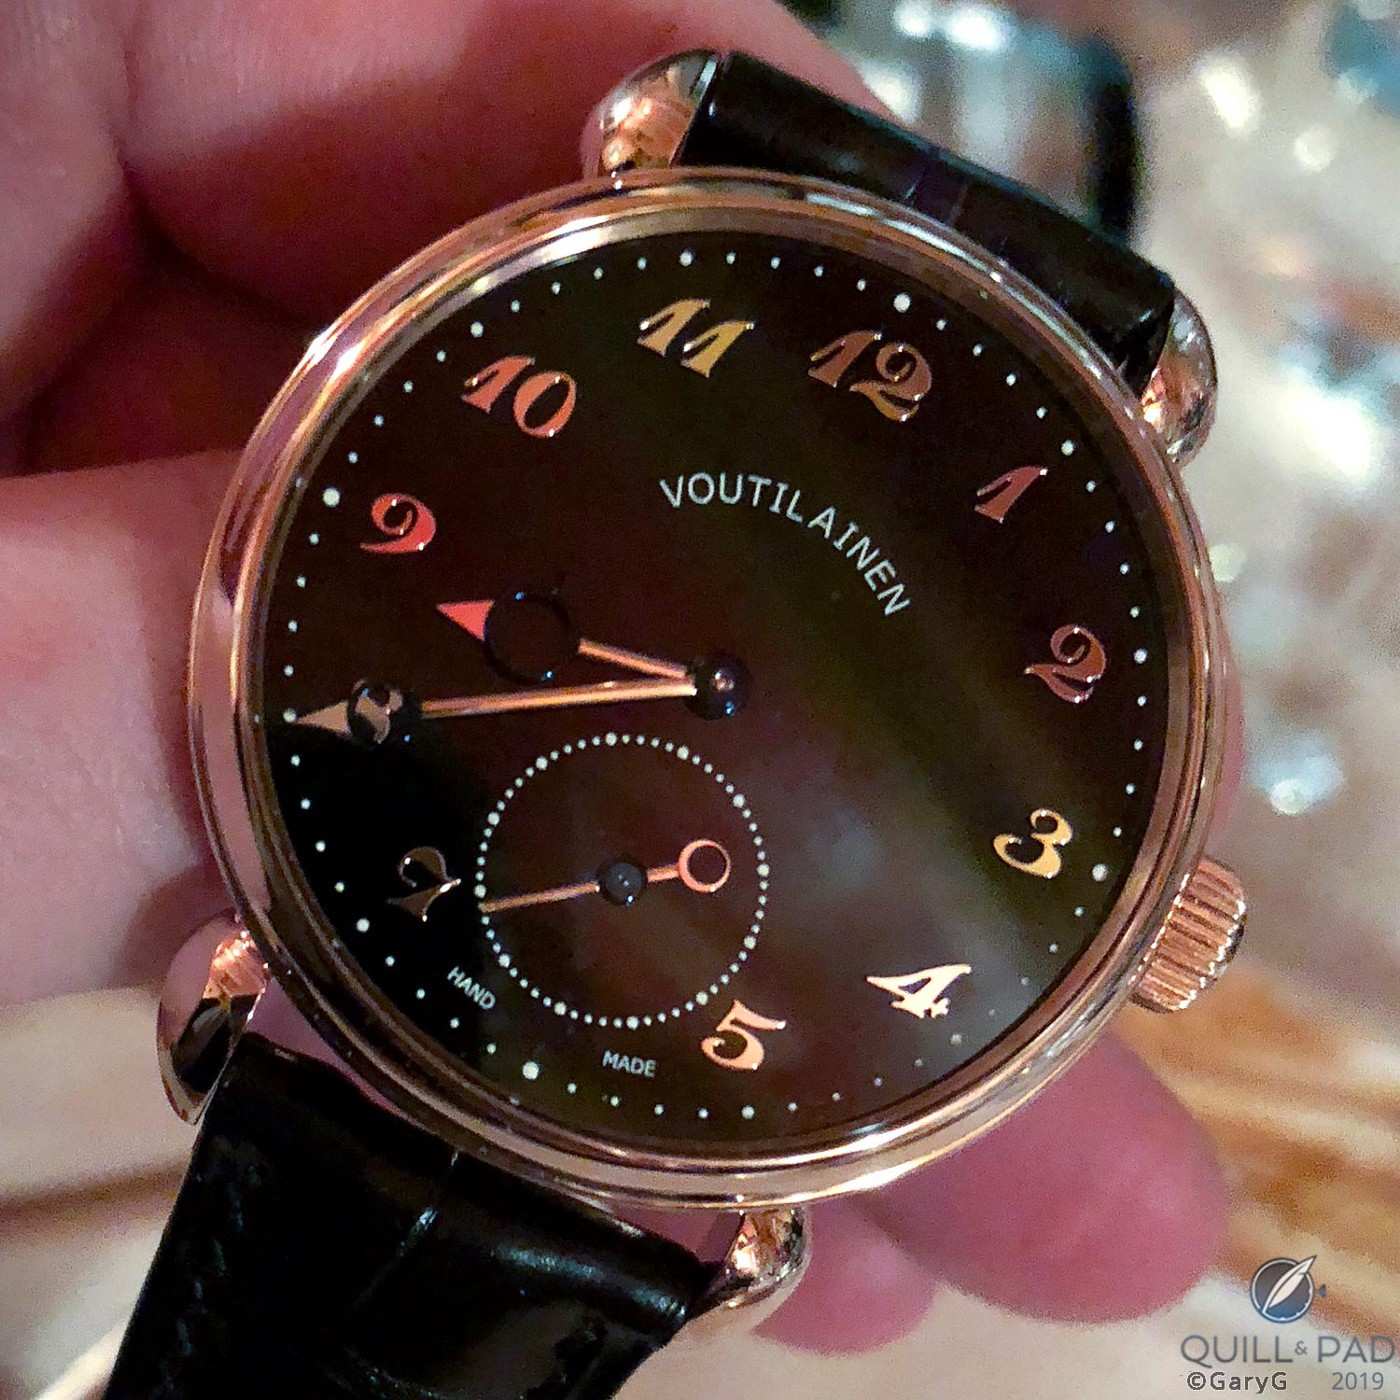 Voutilainen Vingt-8 in red gold with enamel dial and Breguet numerals